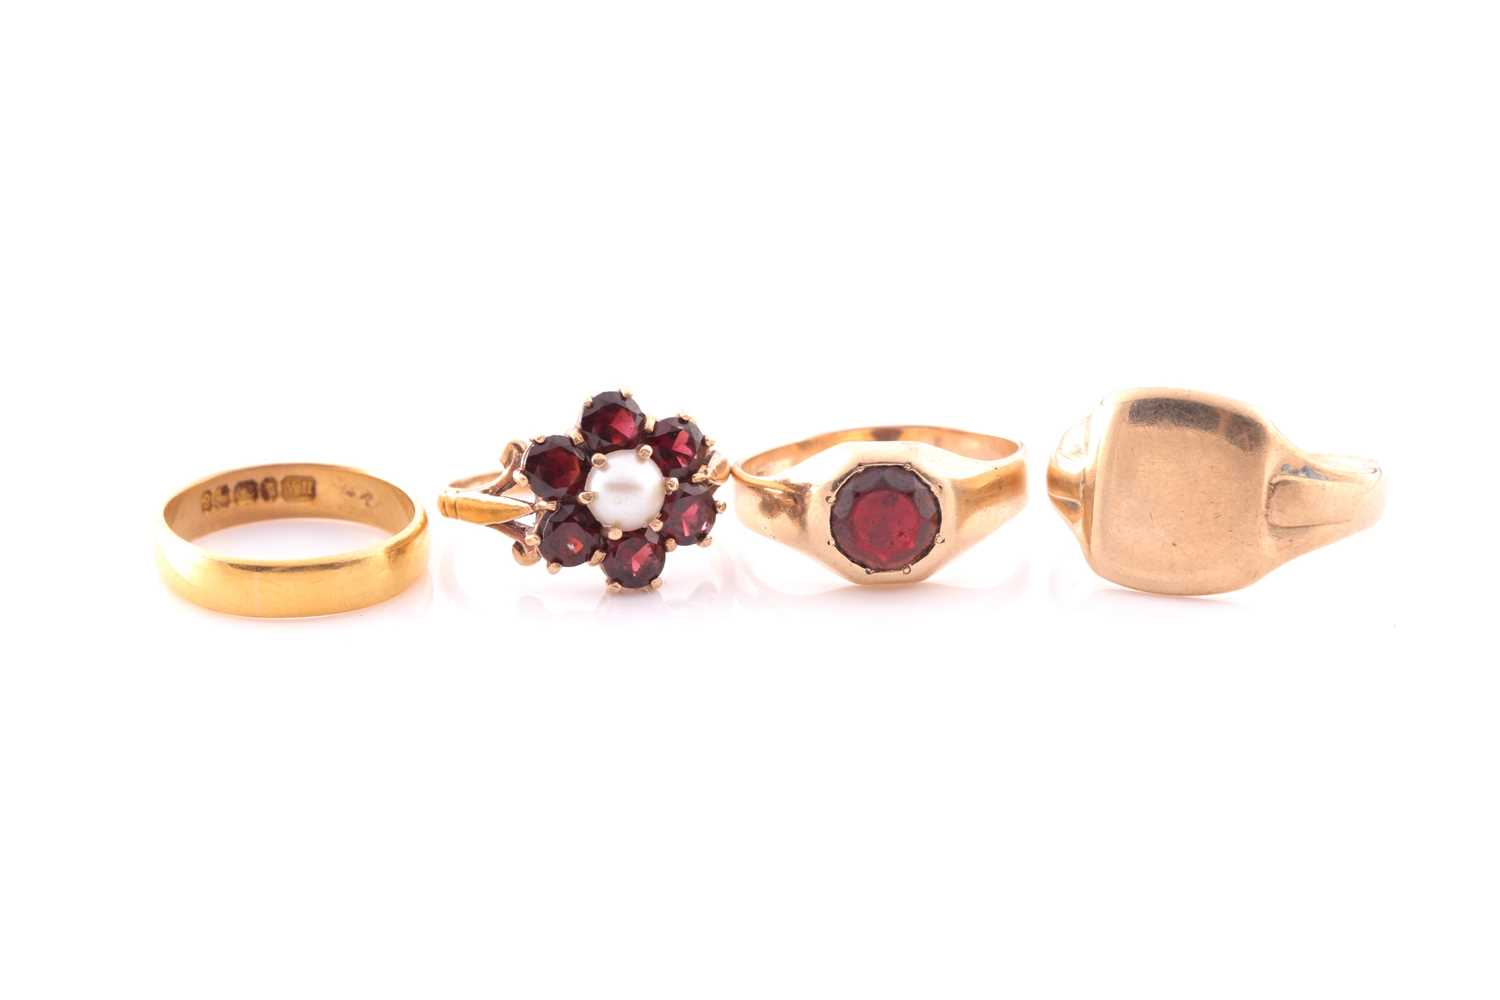 A 9ct yellow gold, garnet, and pearl floral cluster ring, size M, together with a 9ct yellow gold